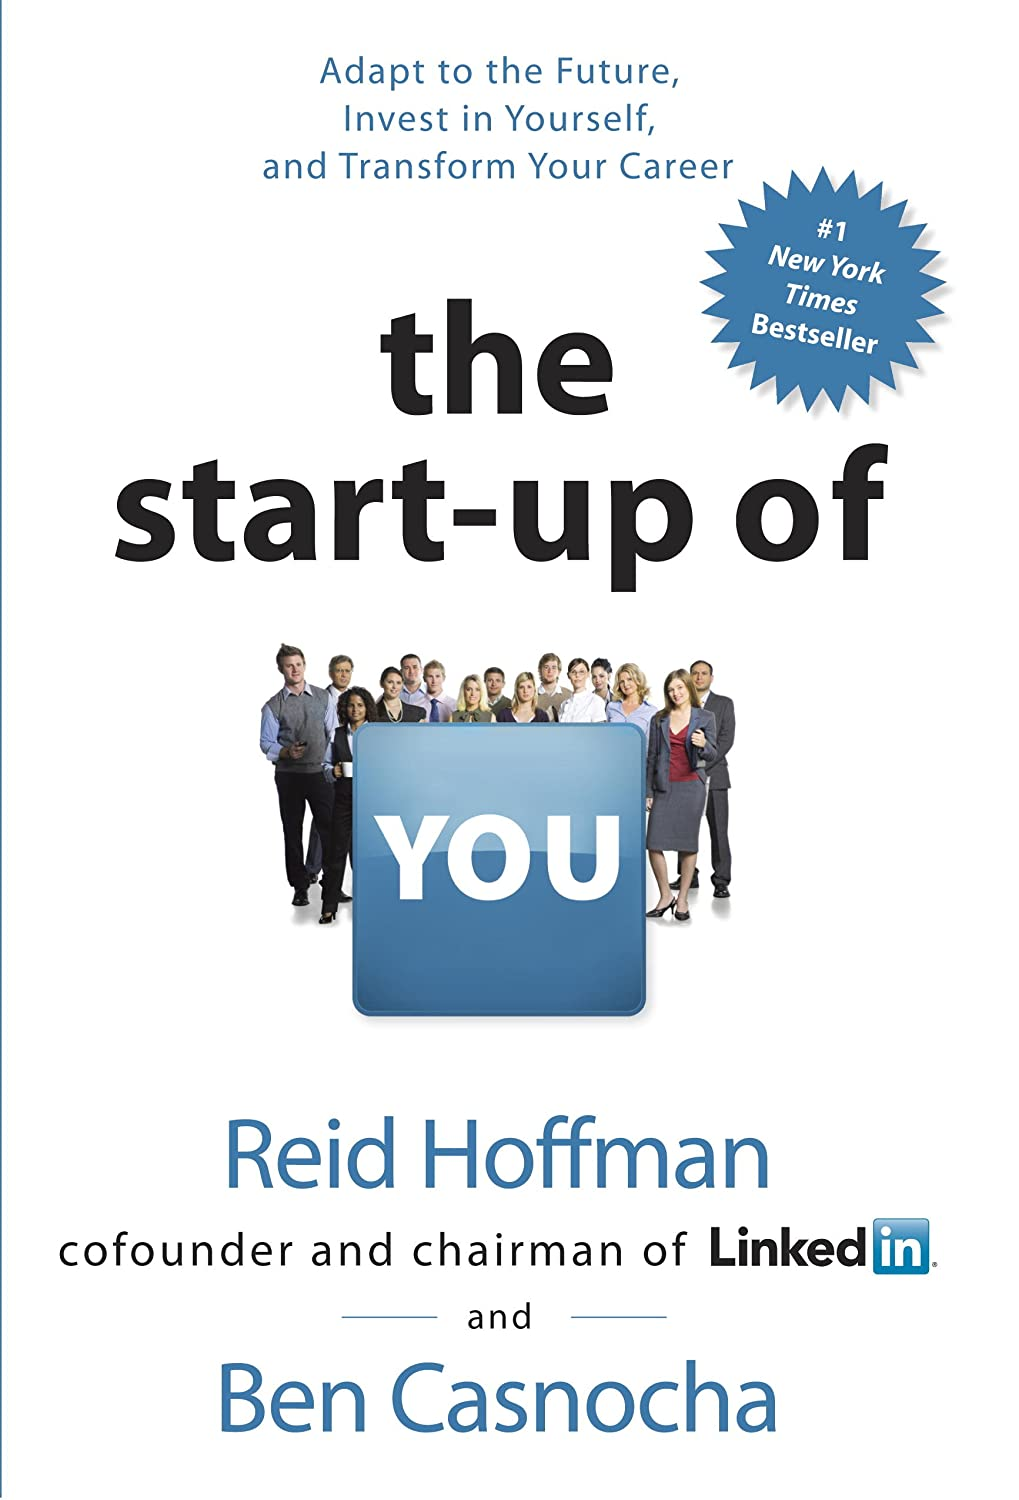 db441726e The Start-up of You  Adapt to the Future